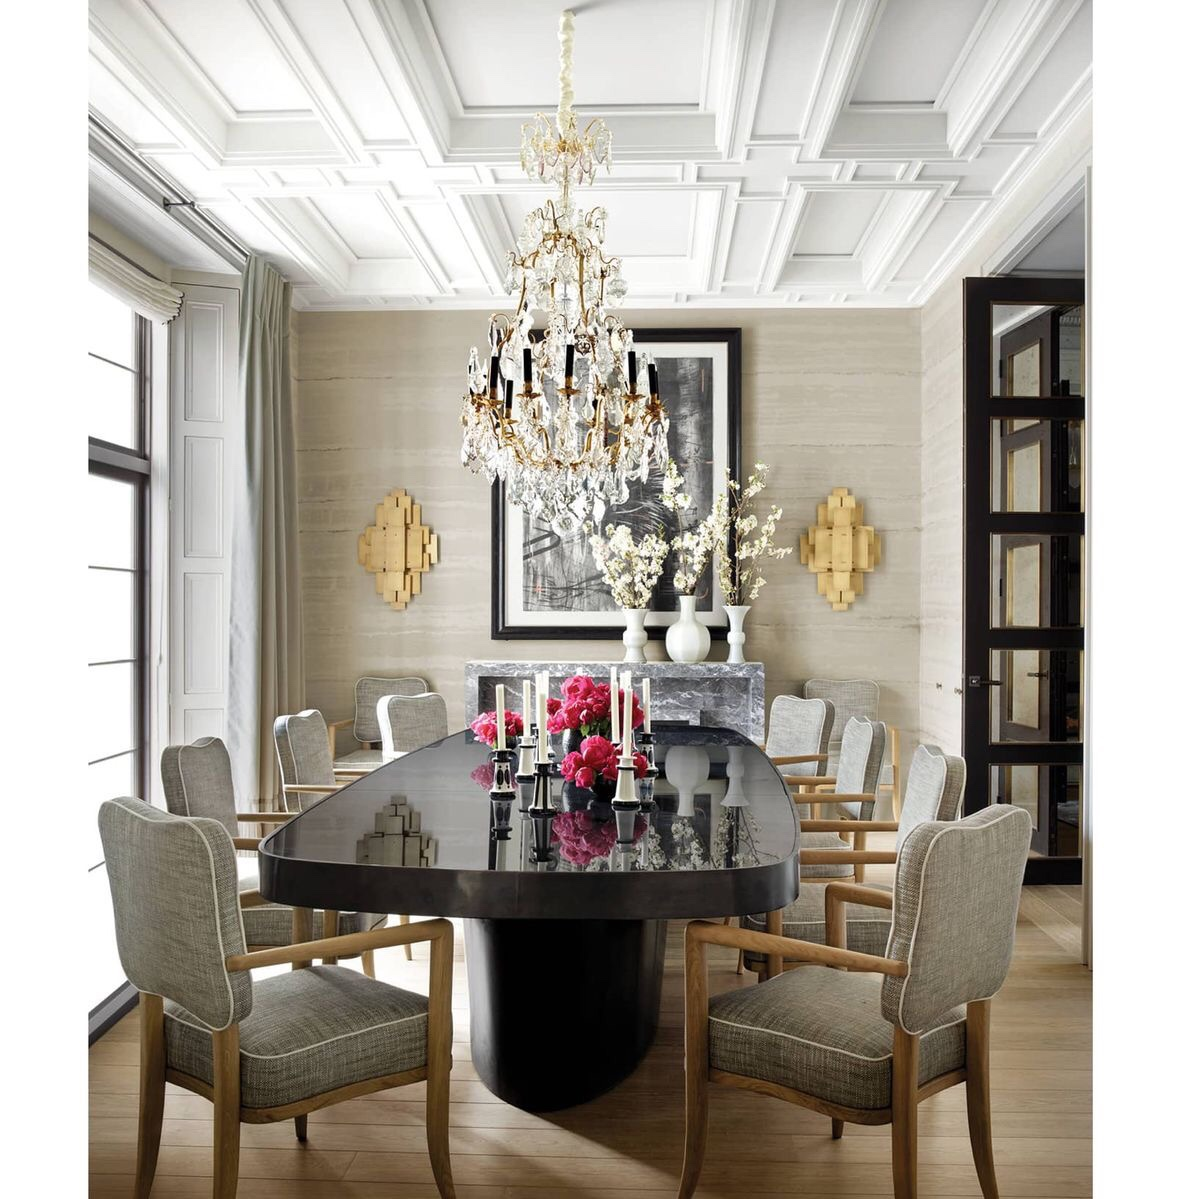 Dining room ,mix of modern and classic elements